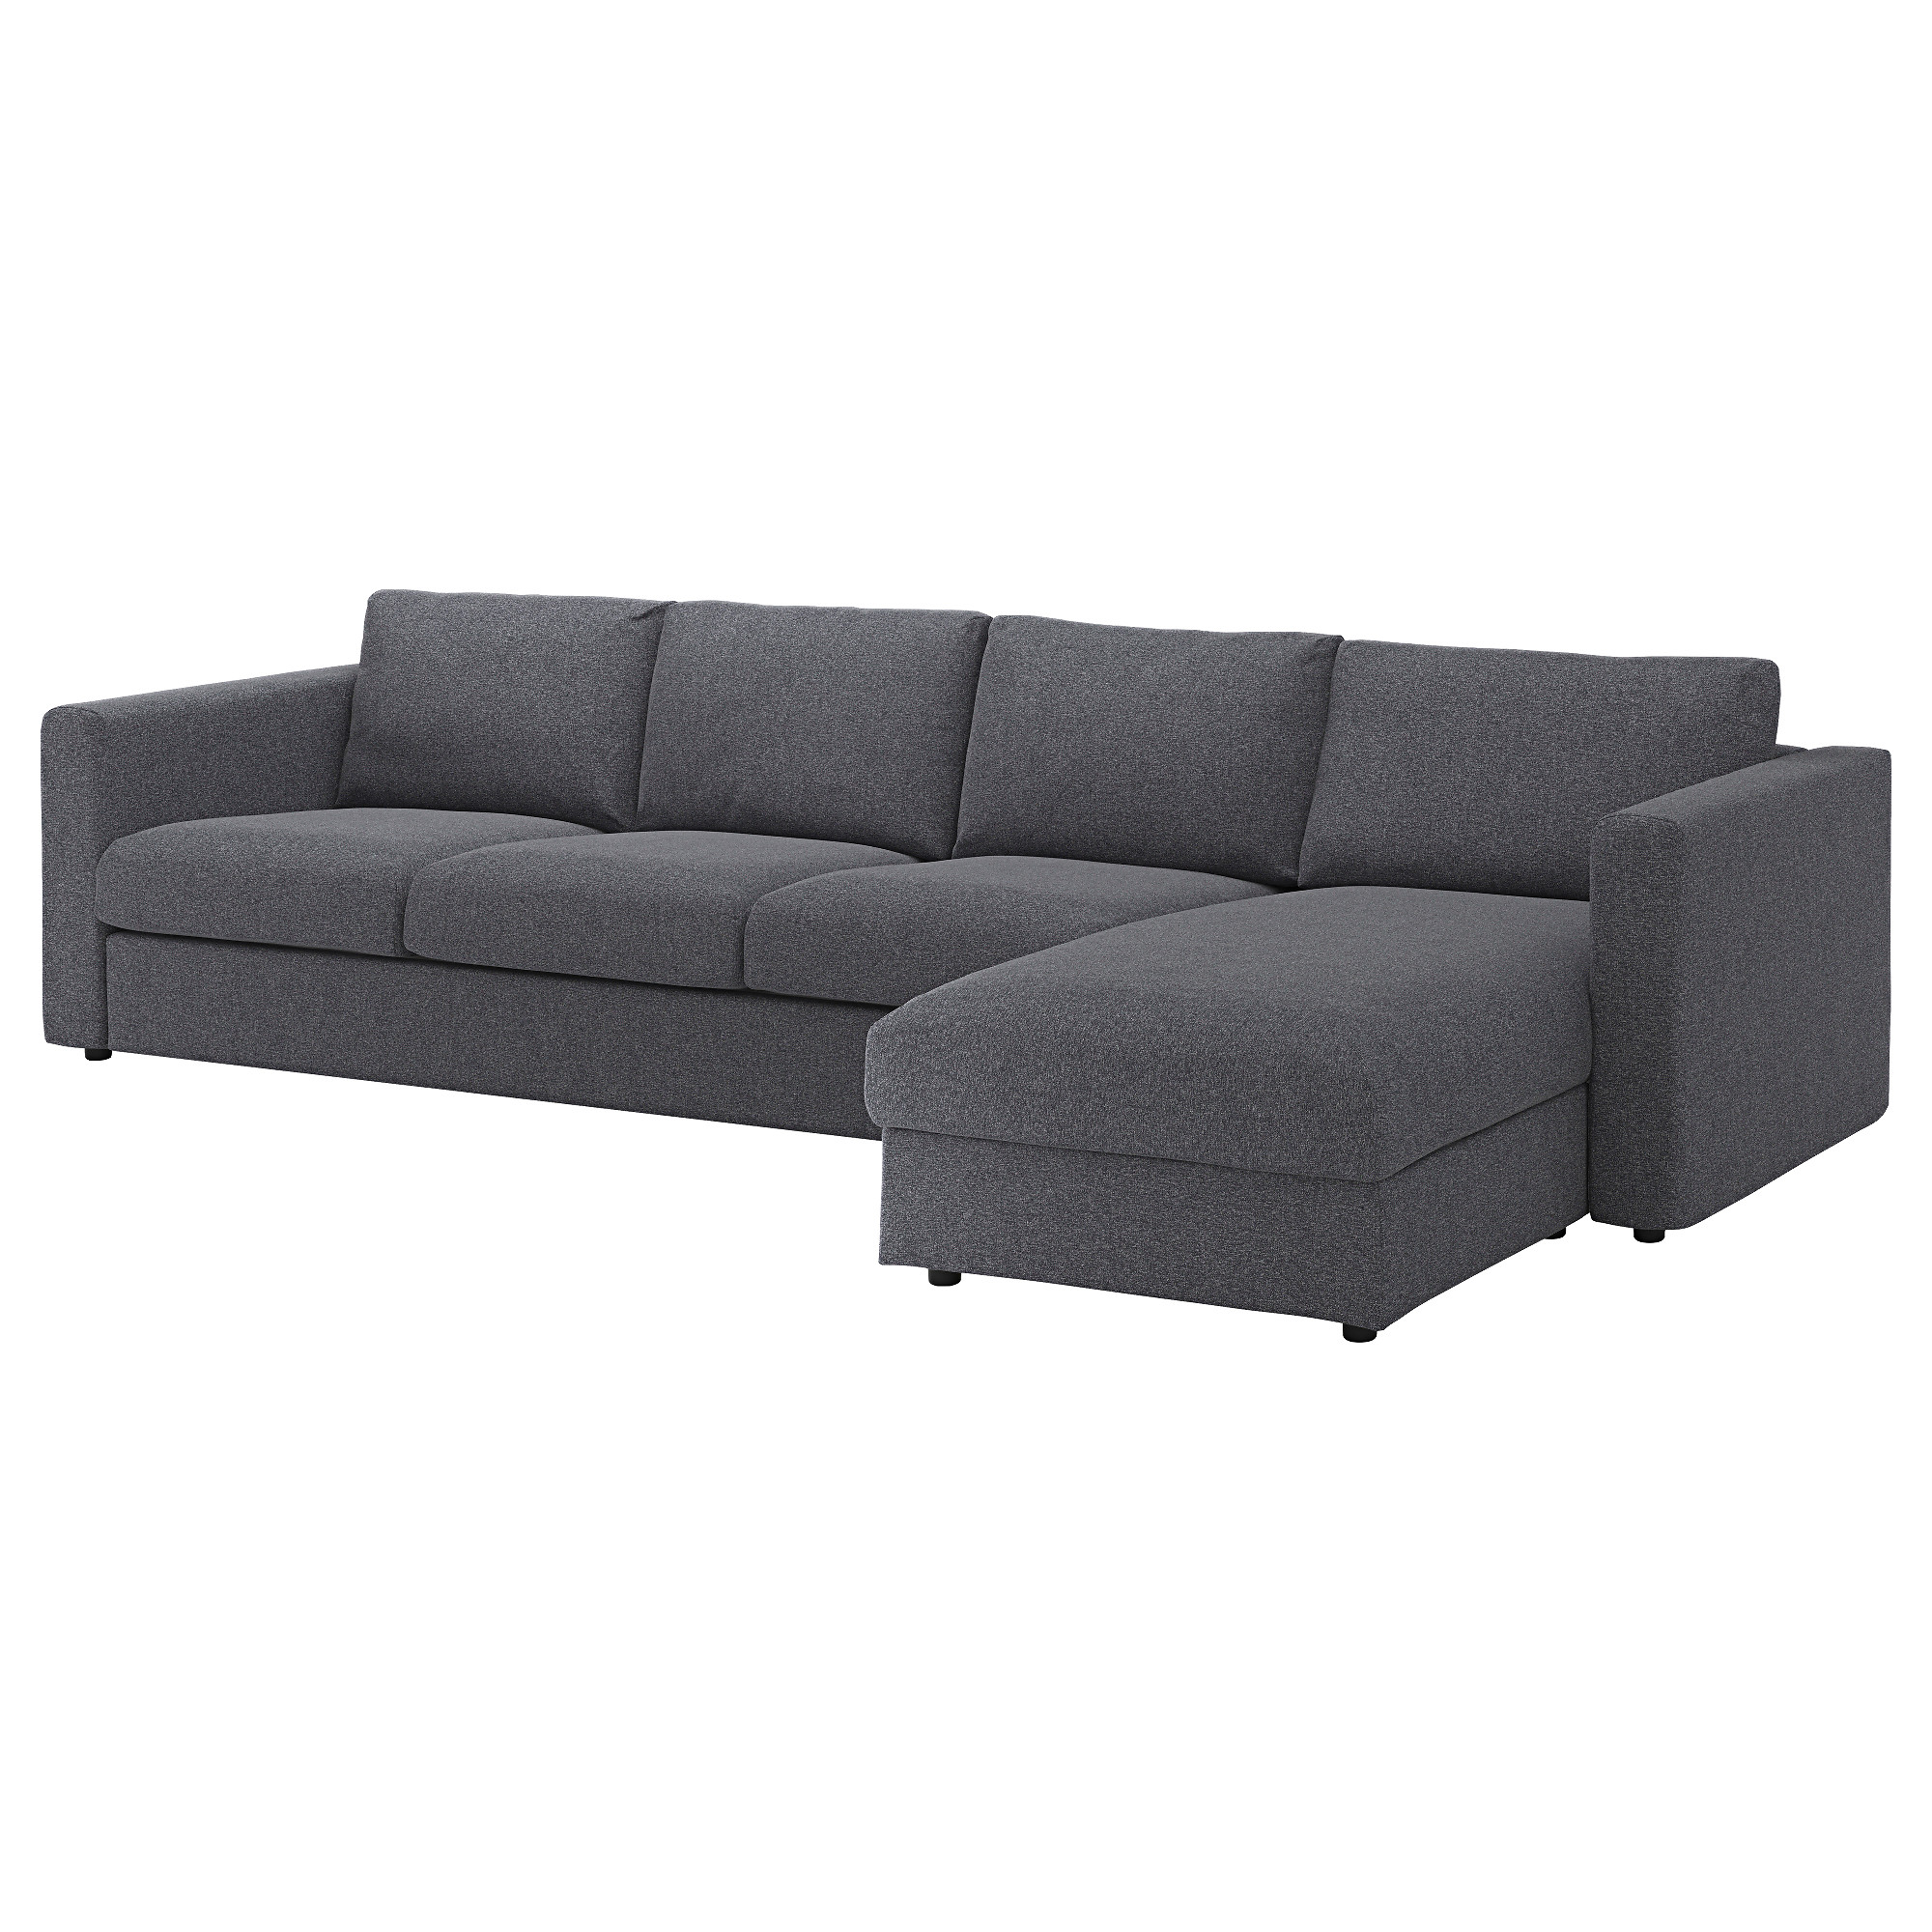 vimle sectional 4seat with chaise gunnared medium gray